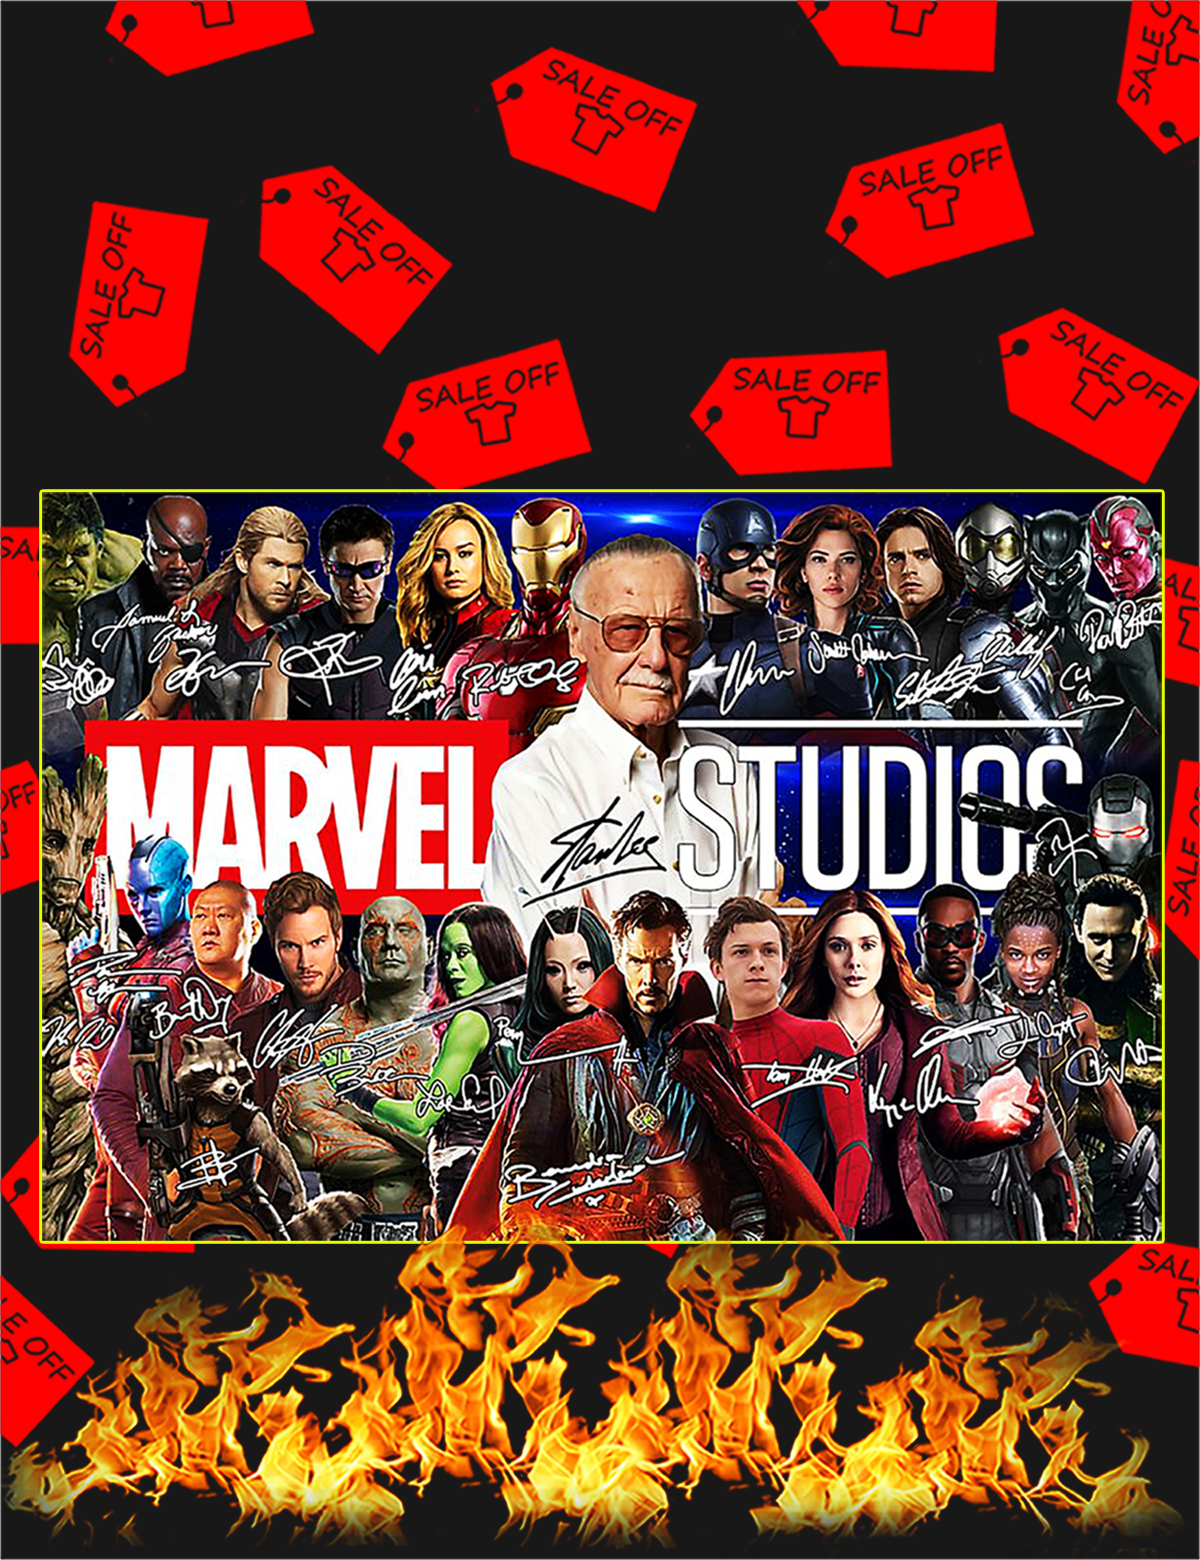 Stan lee marvel studios poster - A1